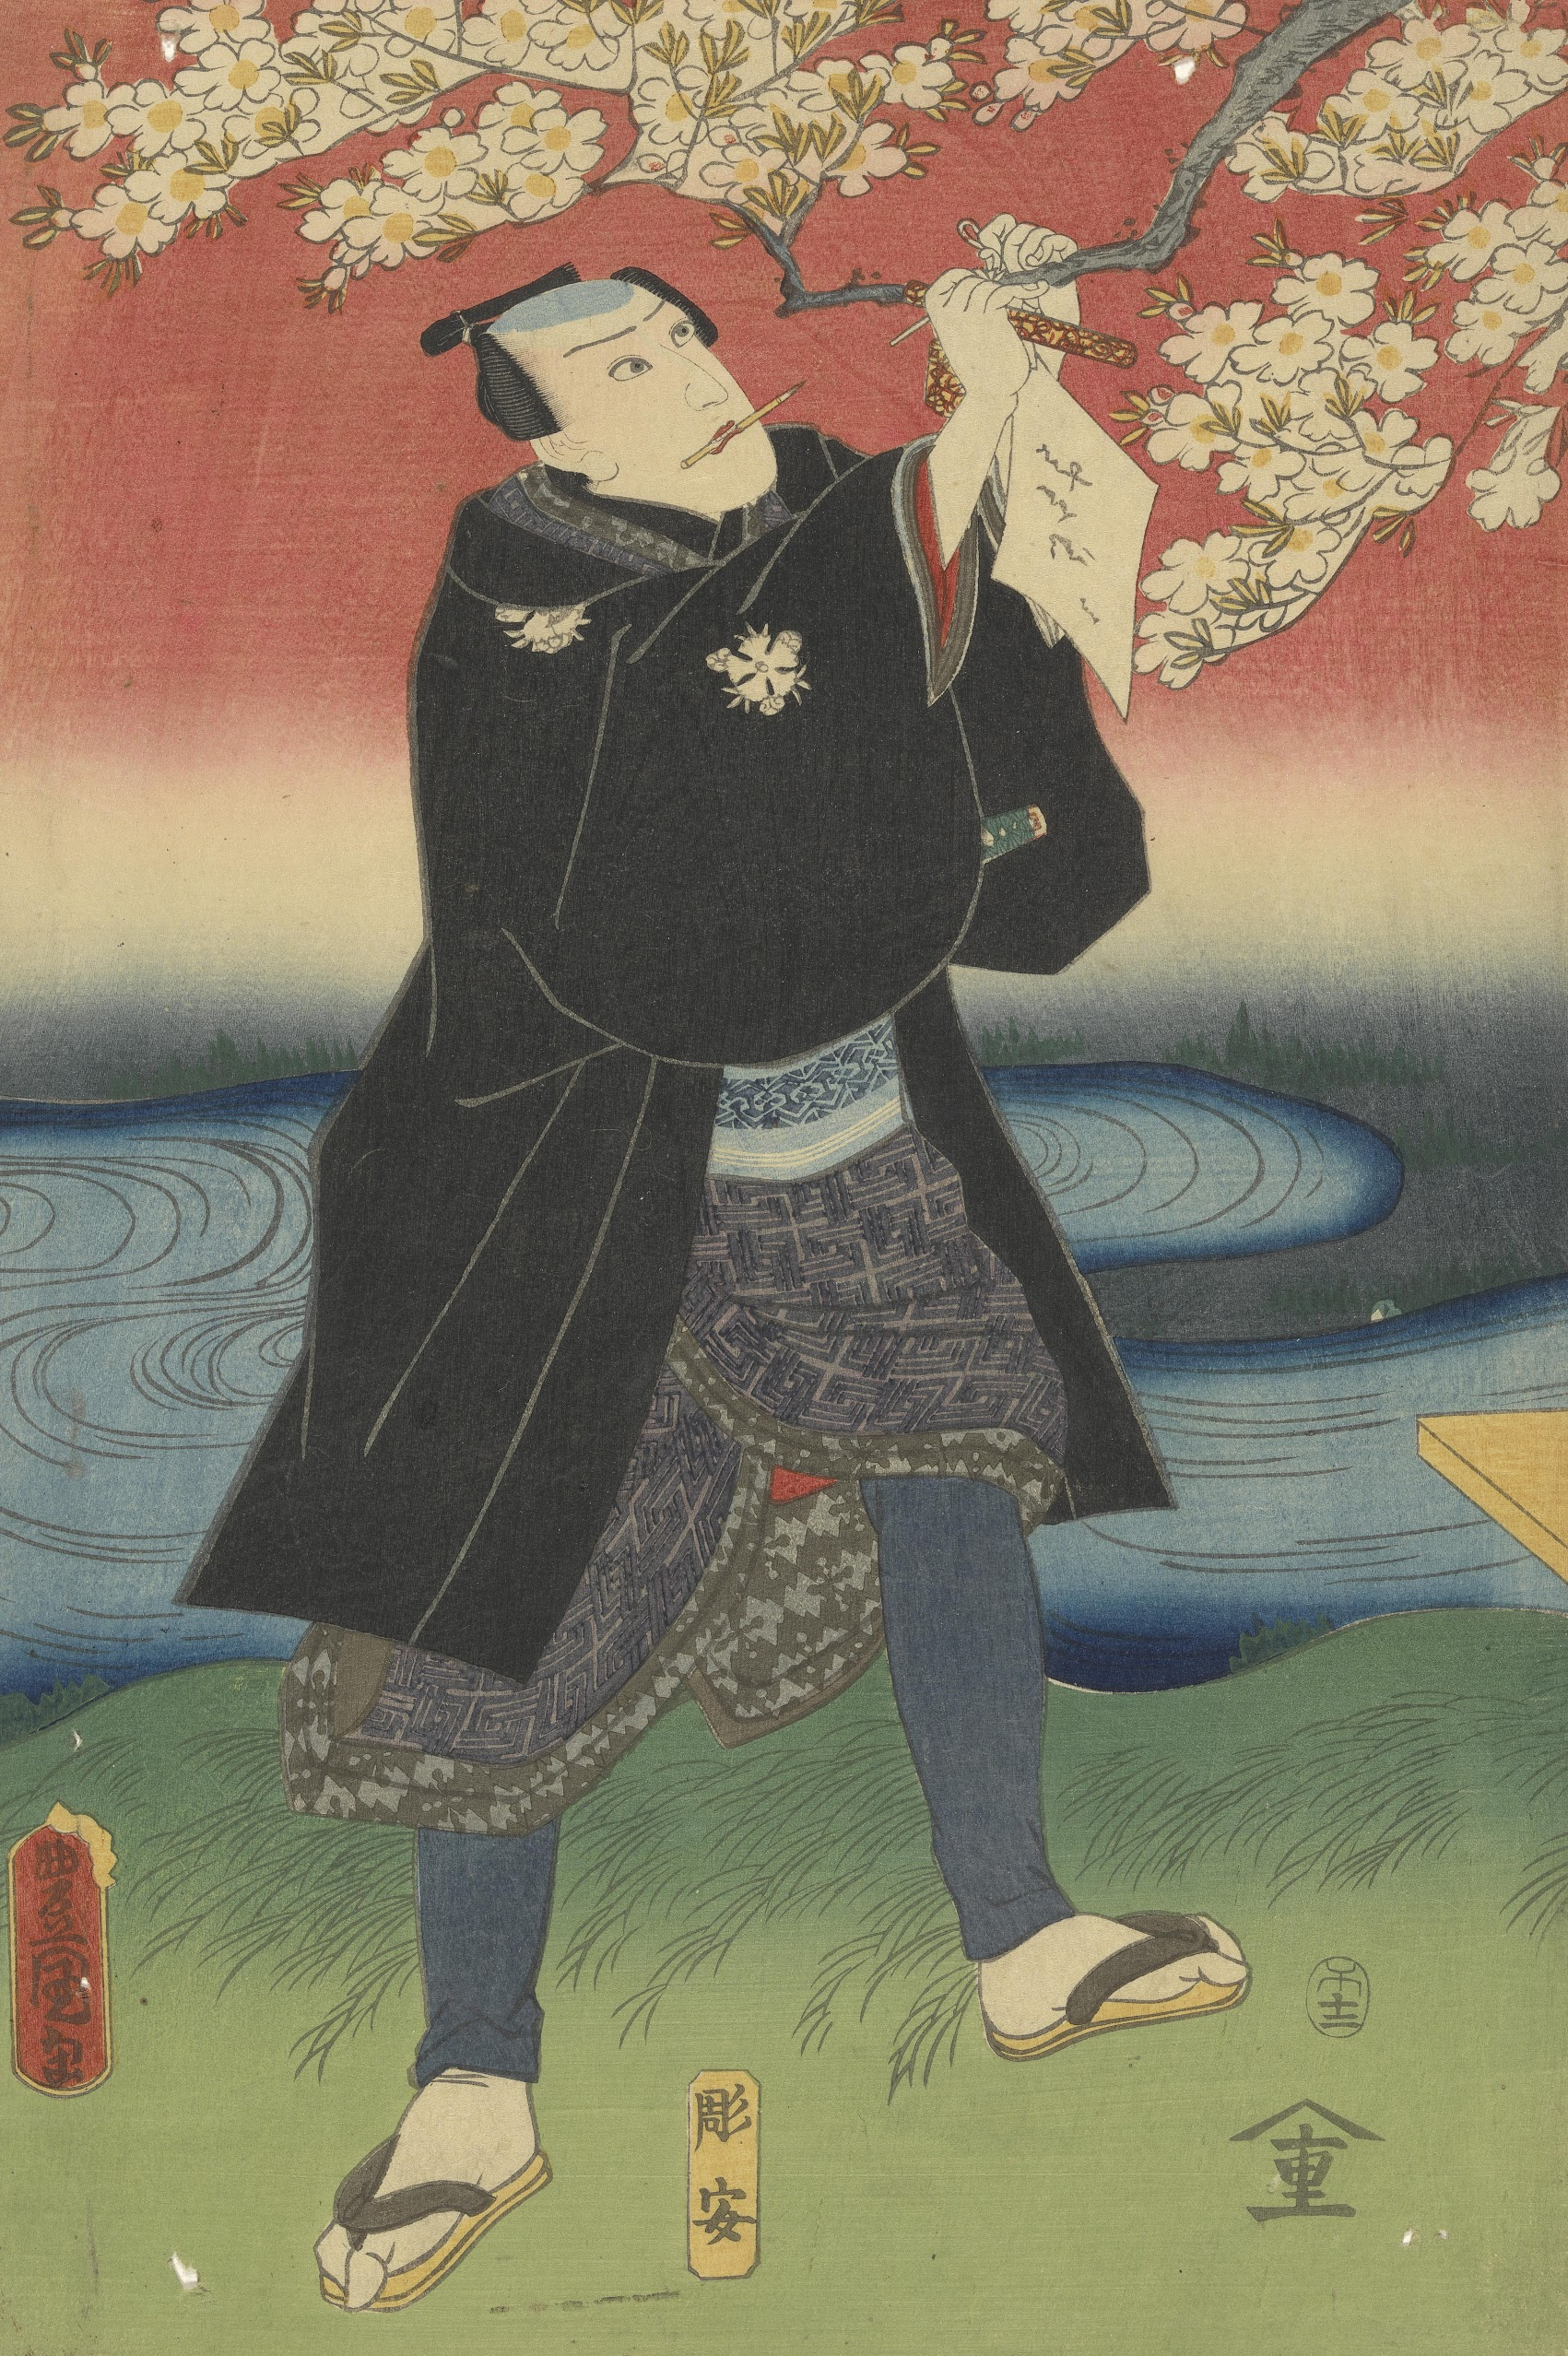 Actor Tying a Poem Slip to a Cherry Tree, fifth sheet of the pentaptych Favourites All Together in Full Flower Edo, twelfth month 1858 Utagawa Kunisada (1786 - 1865)